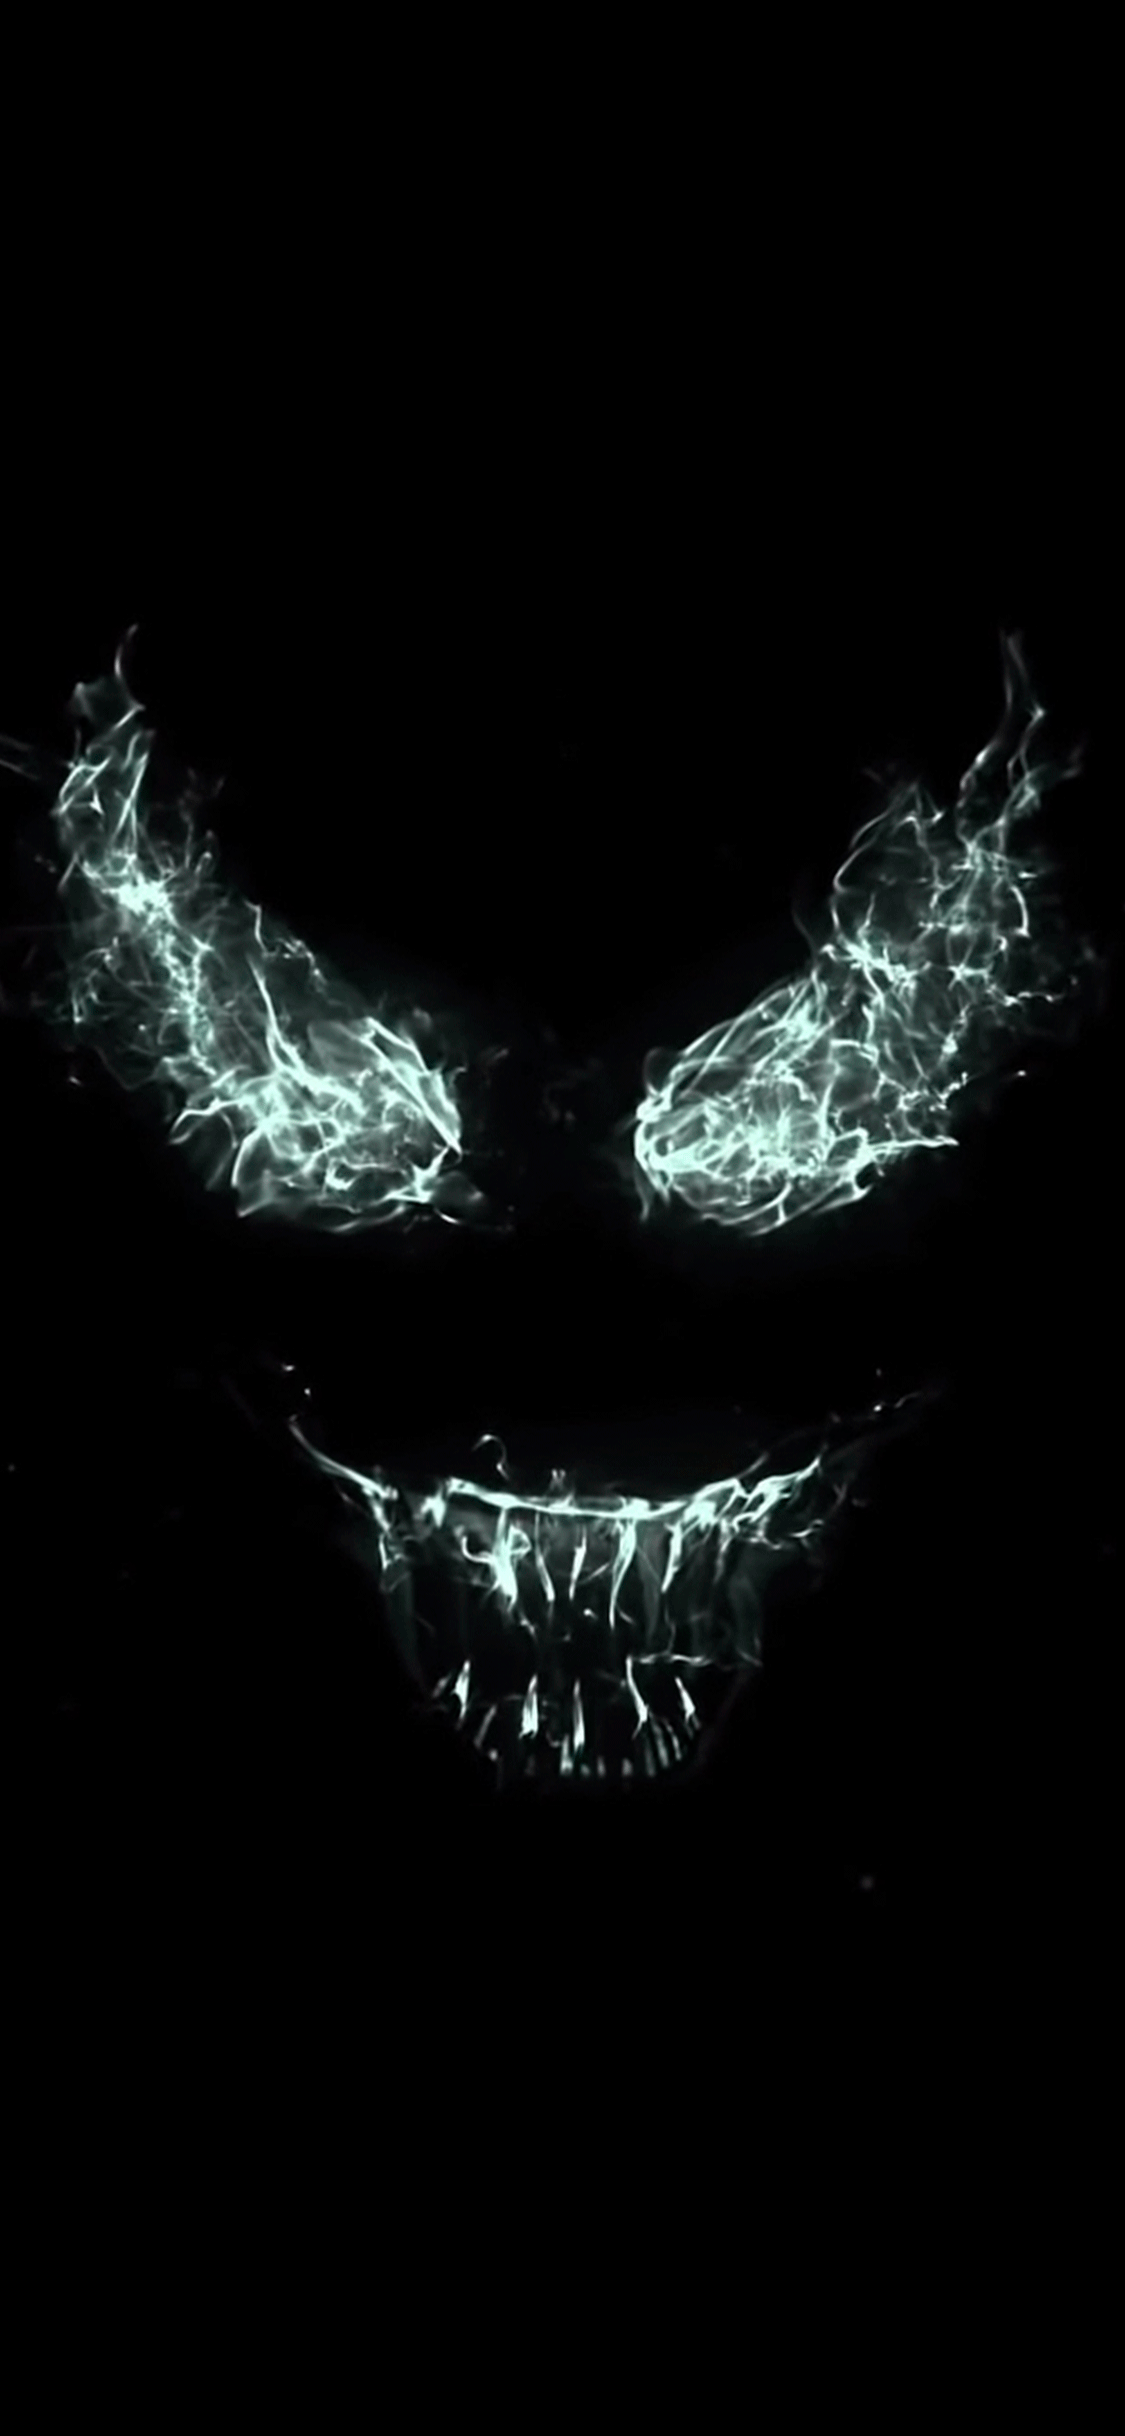 iPhone wallpaper venom movie Venom